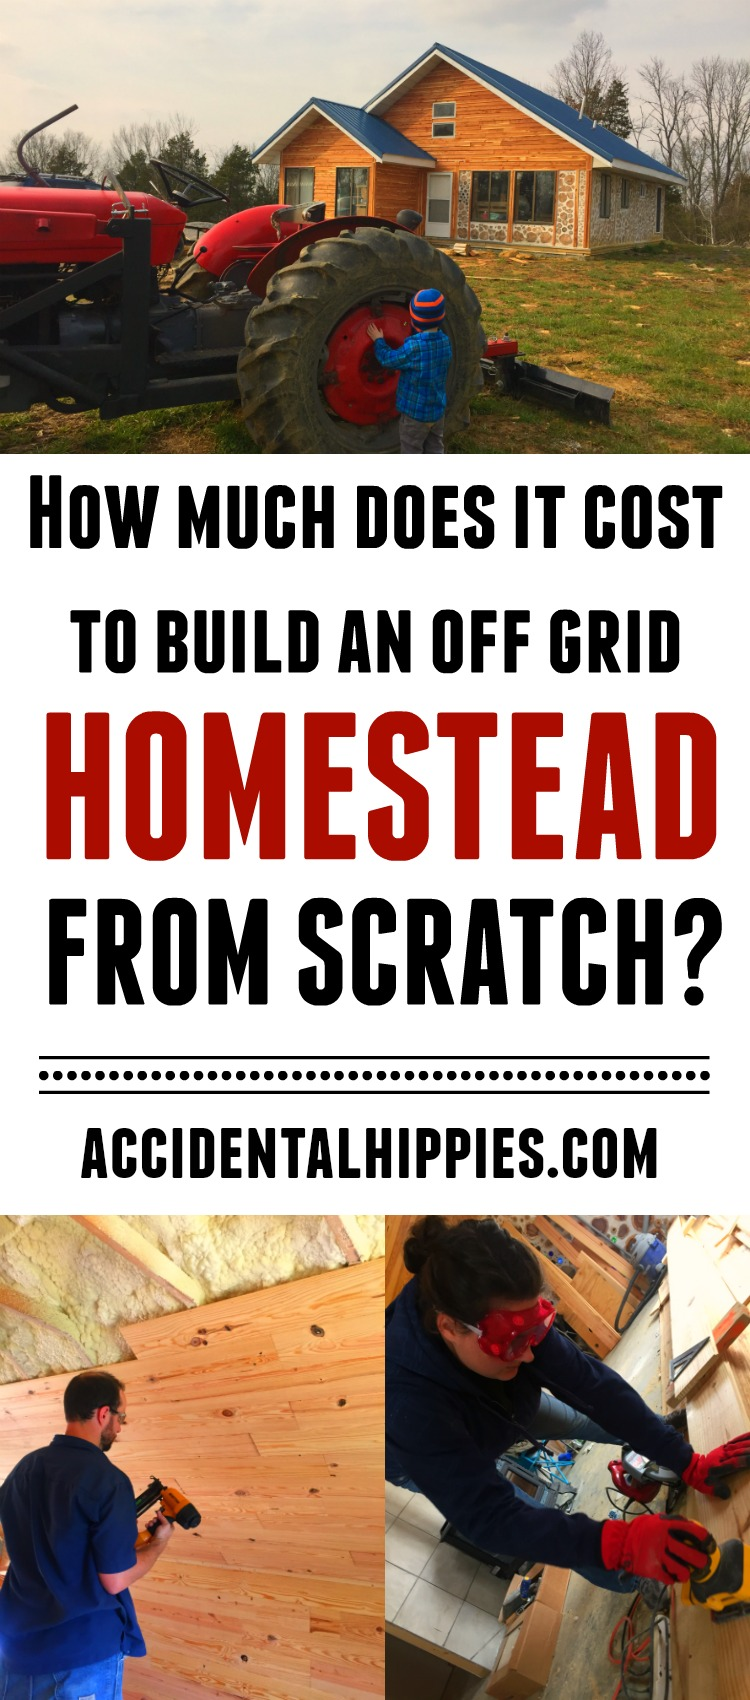 Get a better idea of what it really costs to build a homestead from scratch. Check out our cordwood house and learn the true cost to build from start to finish.